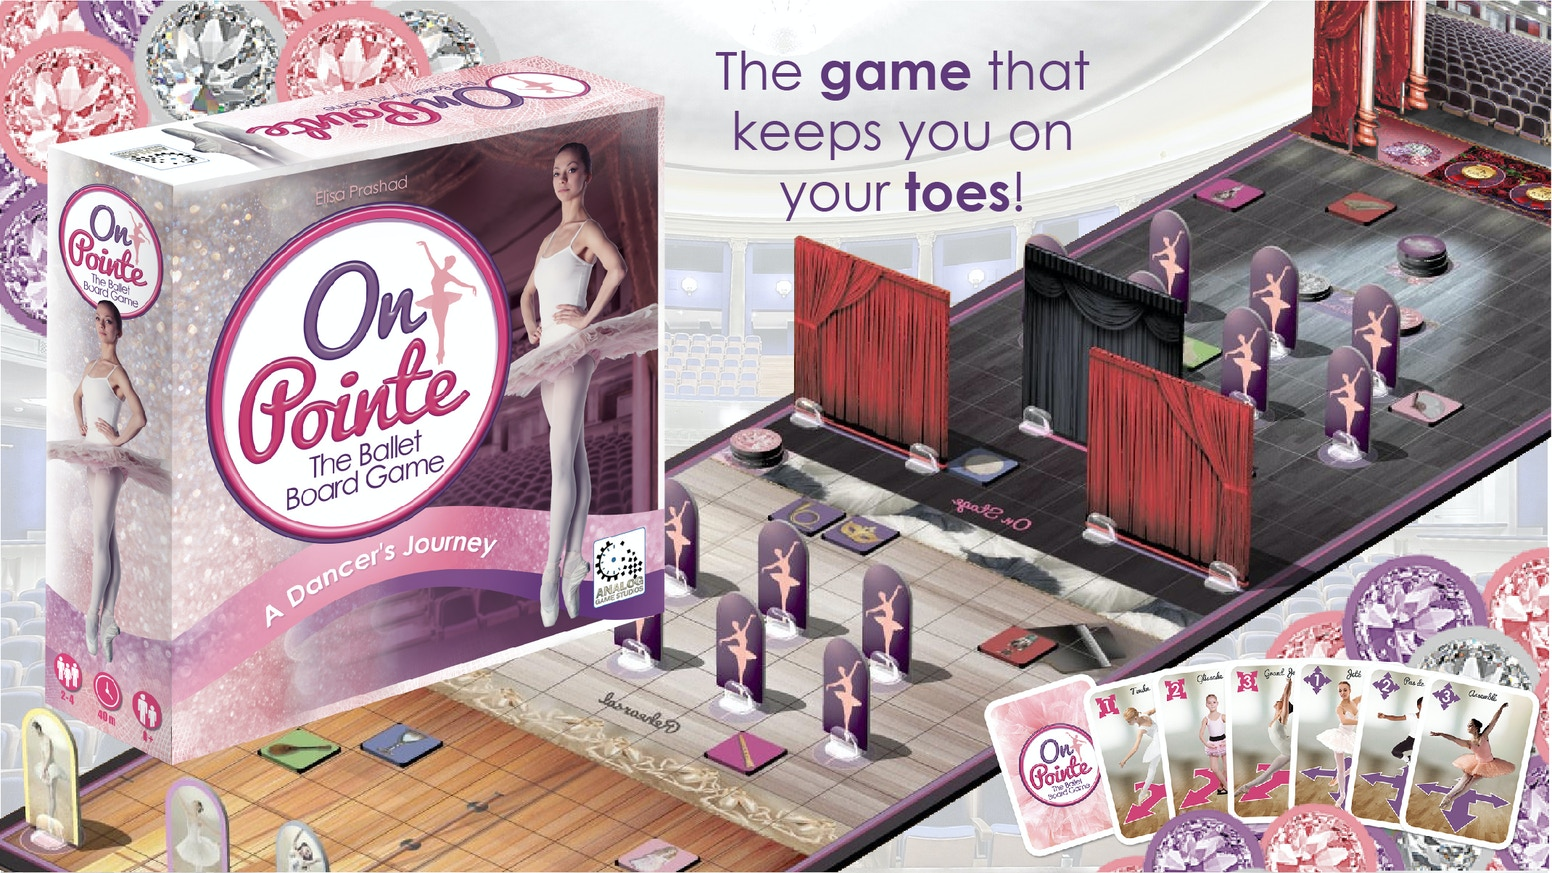 In pursuit to become Prima, collect gems & treasures in the first ever set collection ballet themed tabletop board game.